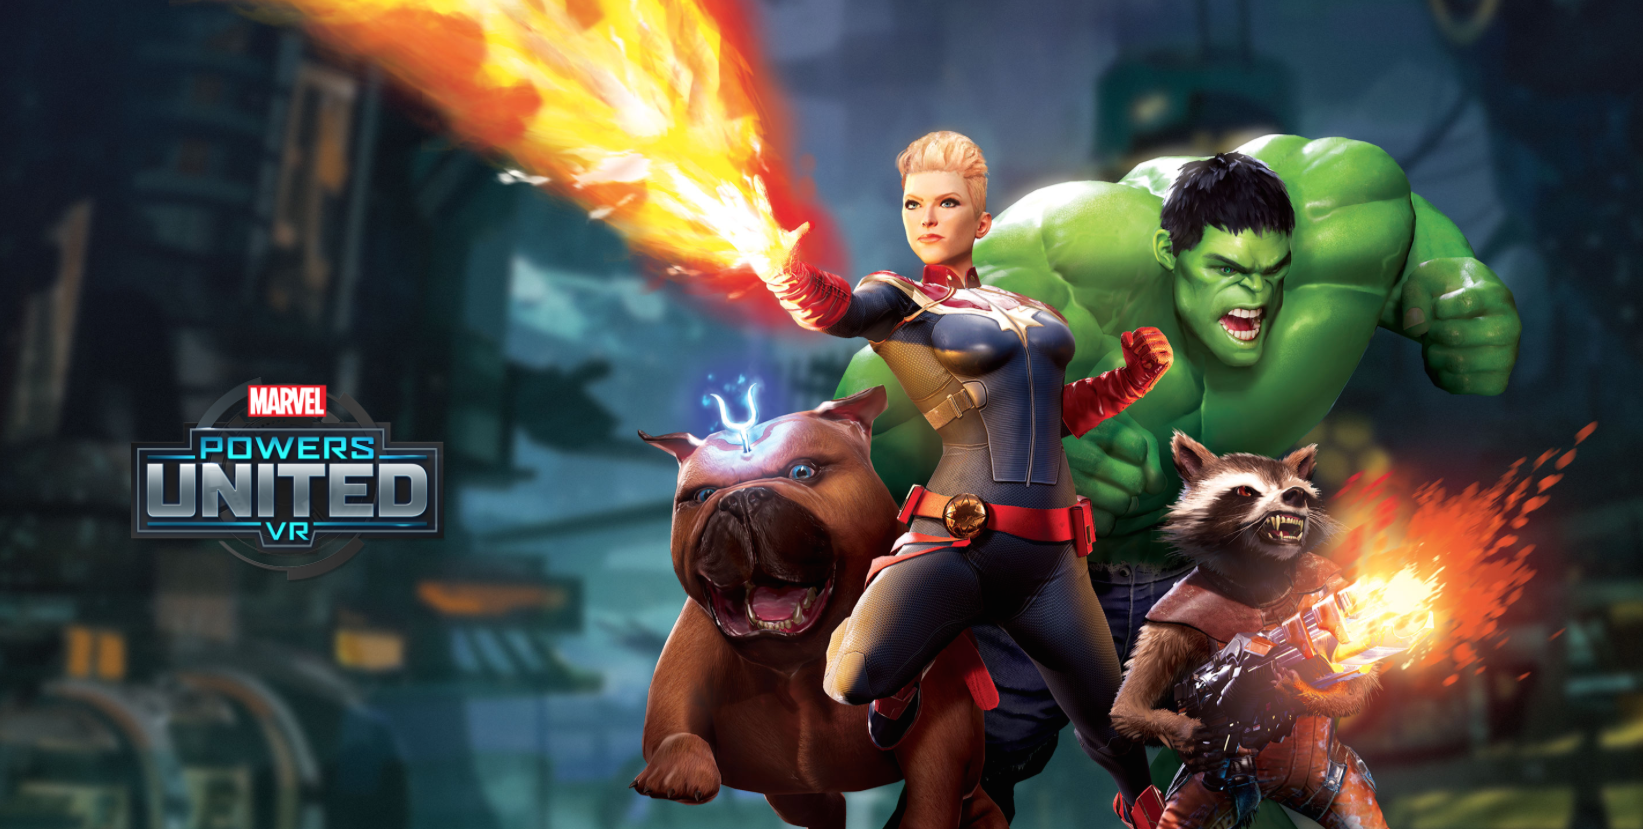 Insomniac Games Unveils Marvel Powers United VR at D23 Expo